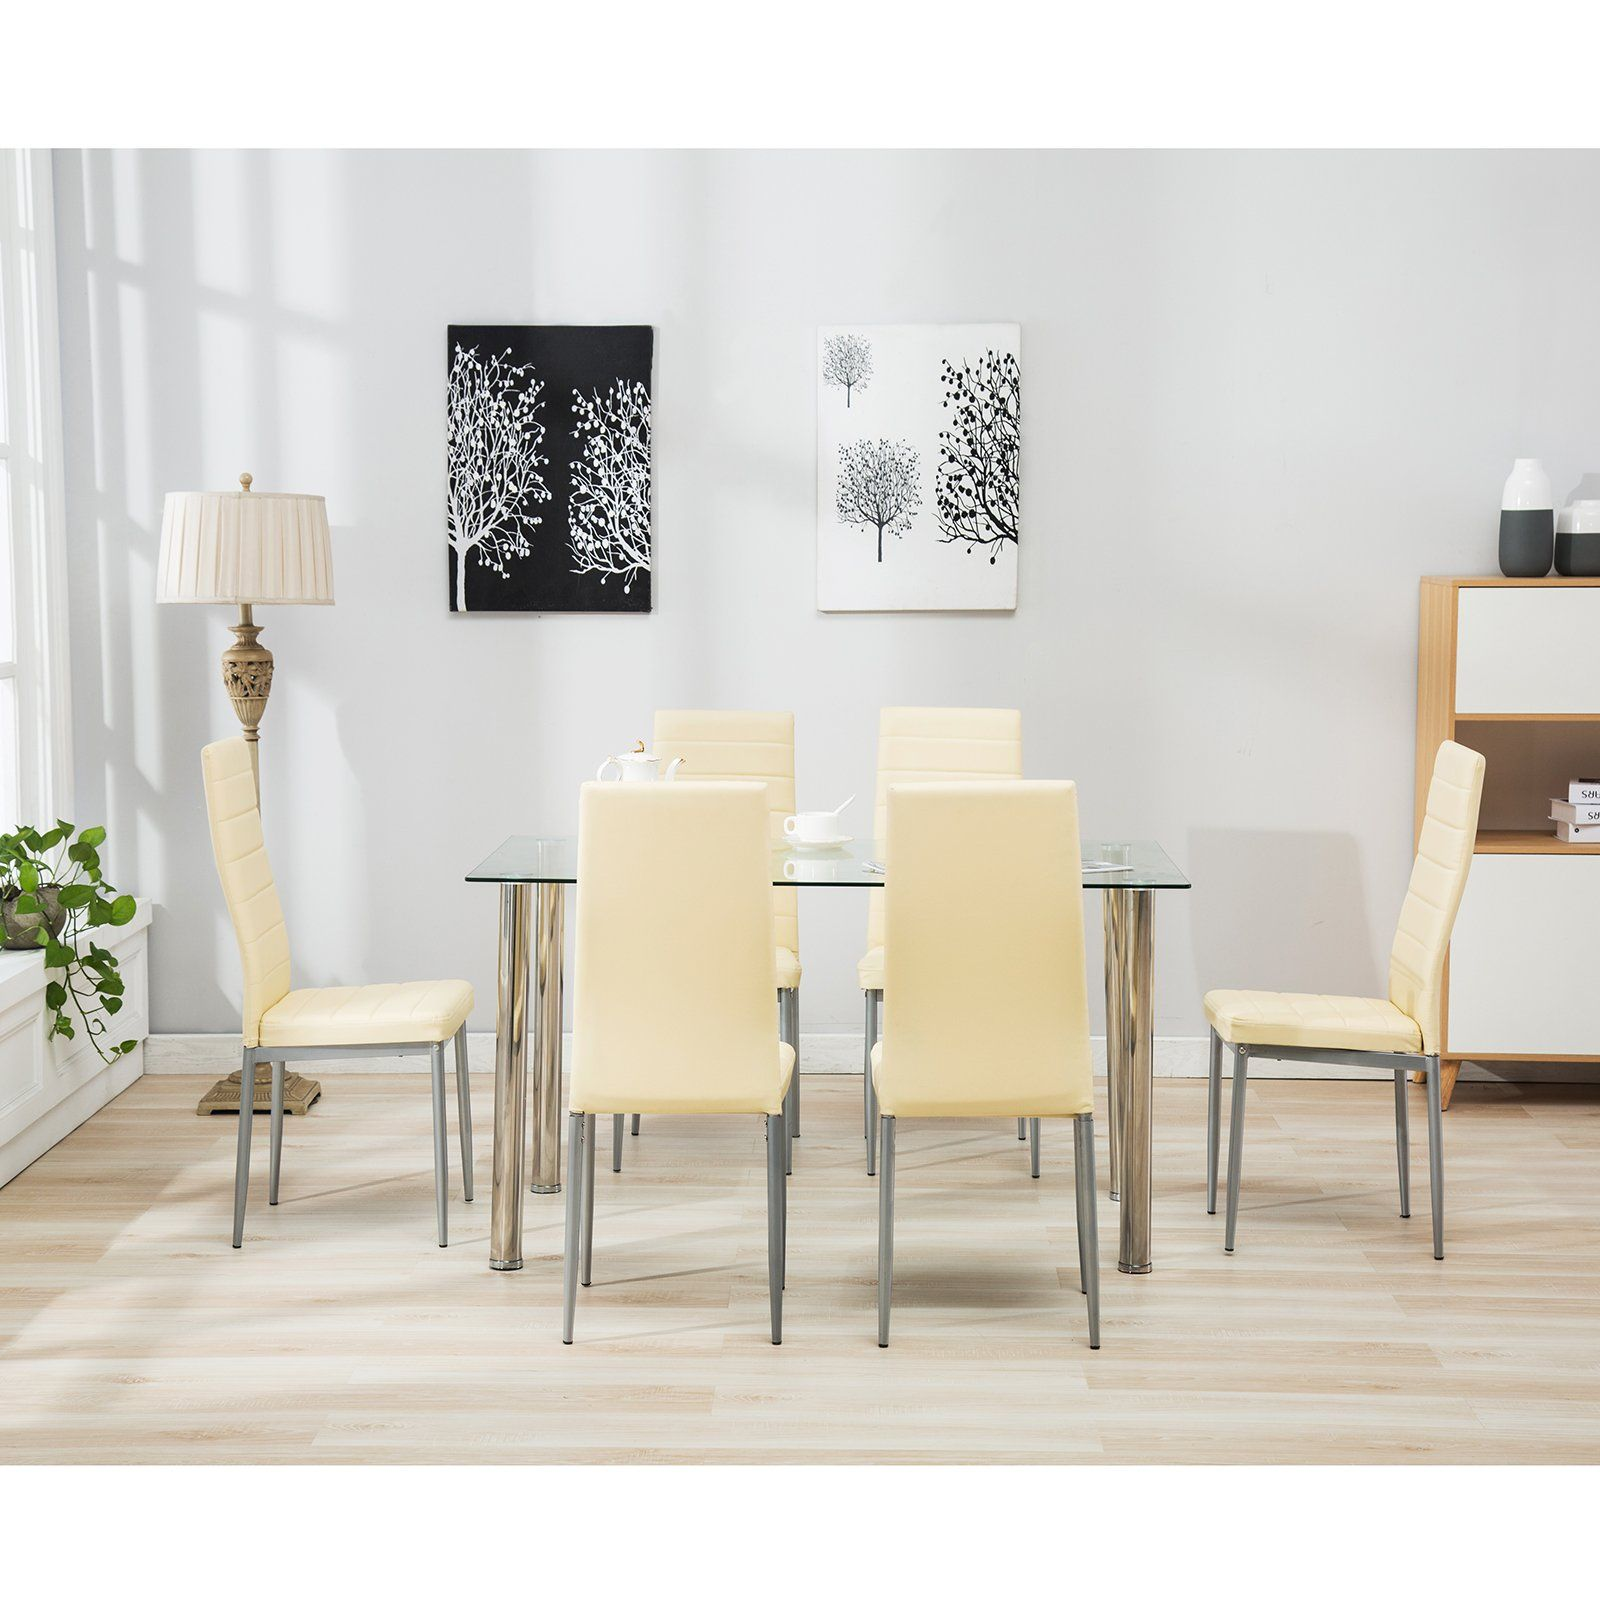 1908e70271a2b Mecor 5 Piece 7 Piece Glass Dining Table Set with Leather Chairs Kitchen  Furniture Beige 7 PC   You can get more details by clicking on the image.